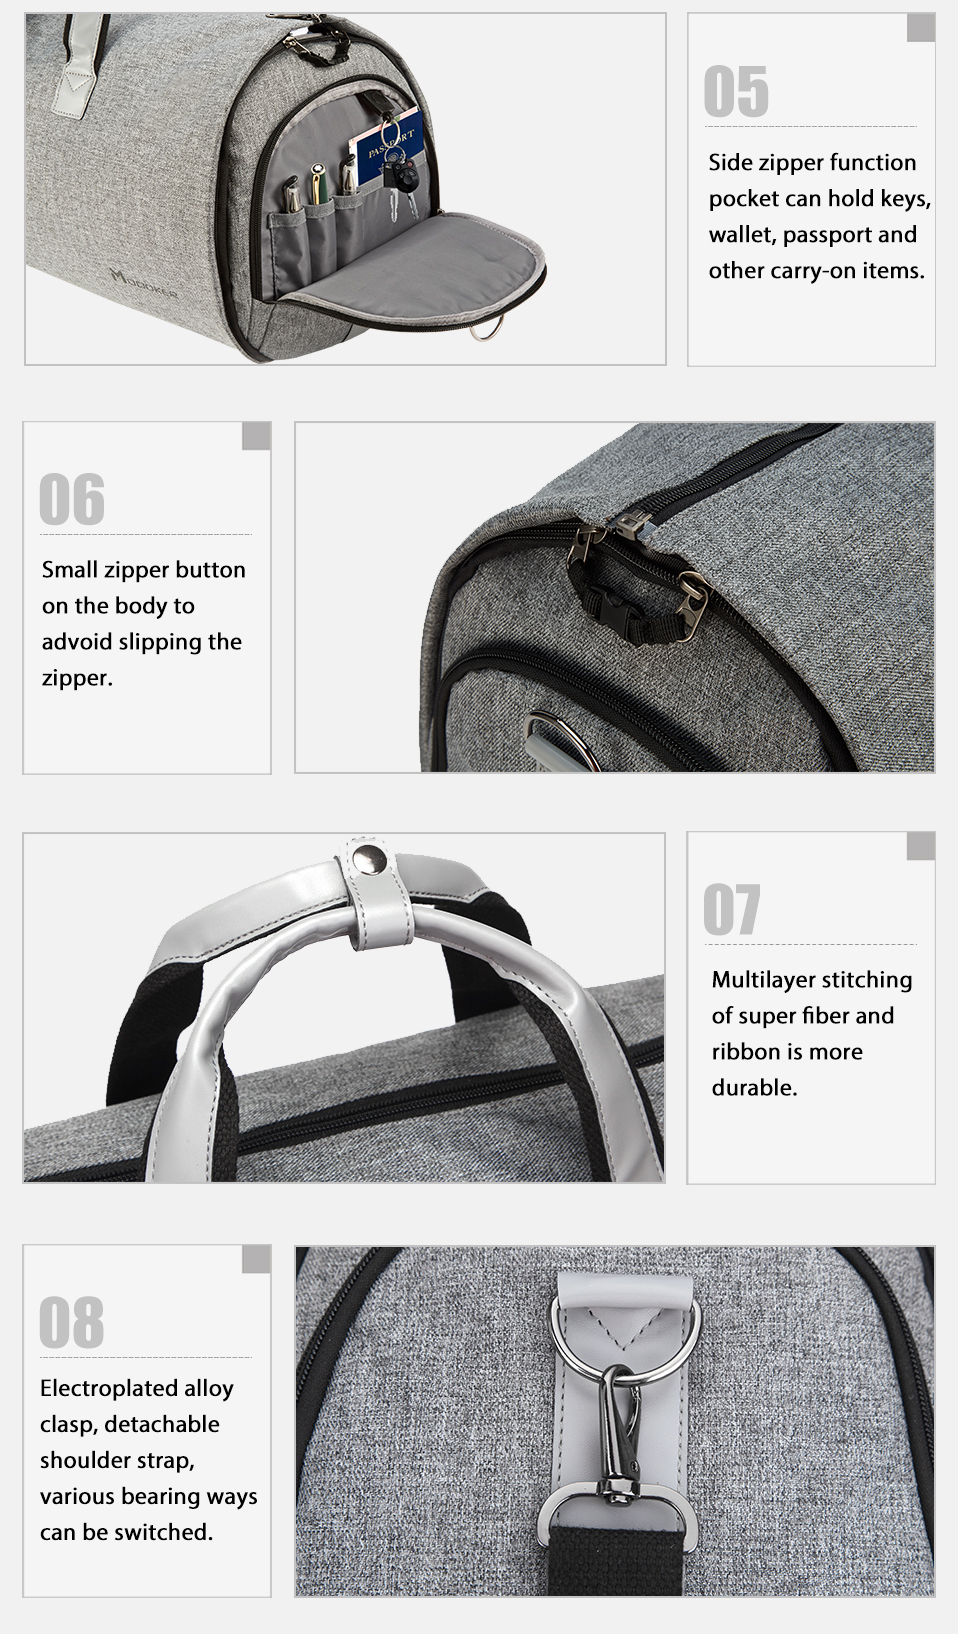 Modoker New Travel Garment Bag Shoulder Strap Duffel Bag Business Fashion Carry on Hanging Clothing Multiple Pockets Waterproof